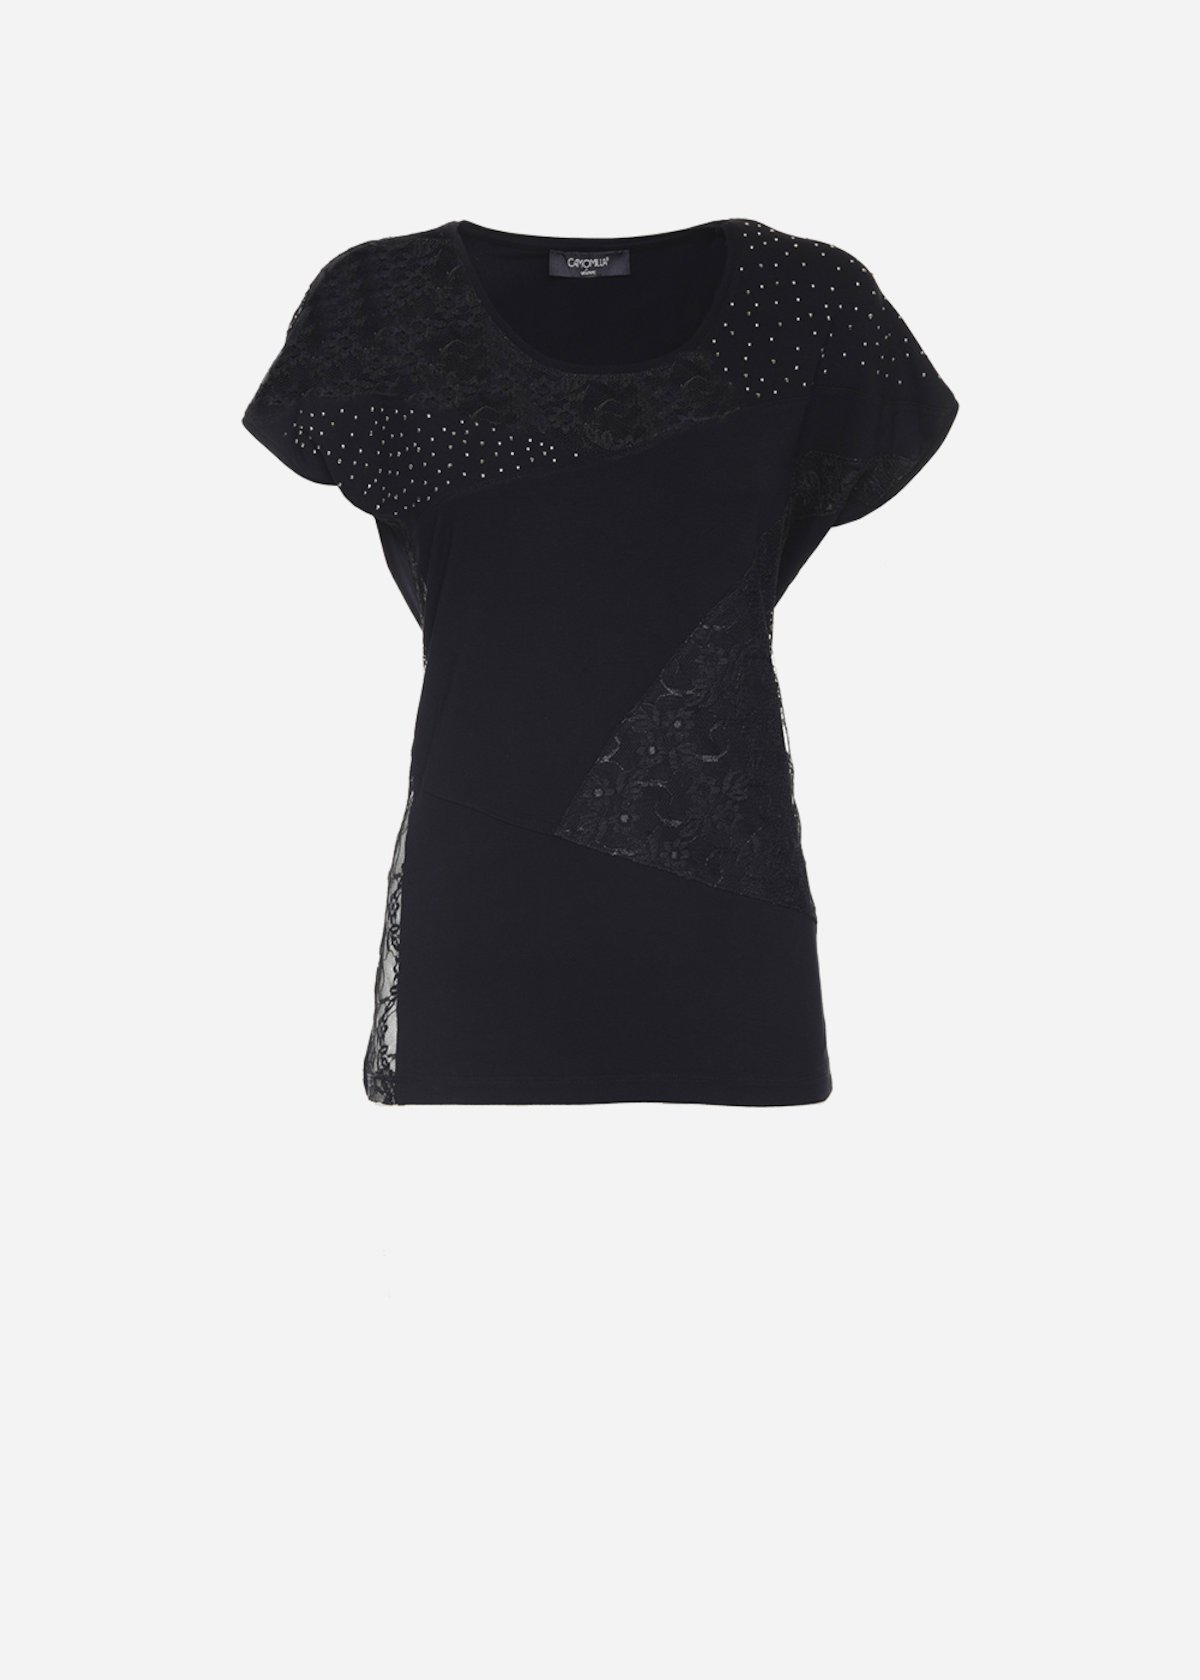 Soleil patch t-shirt - Black